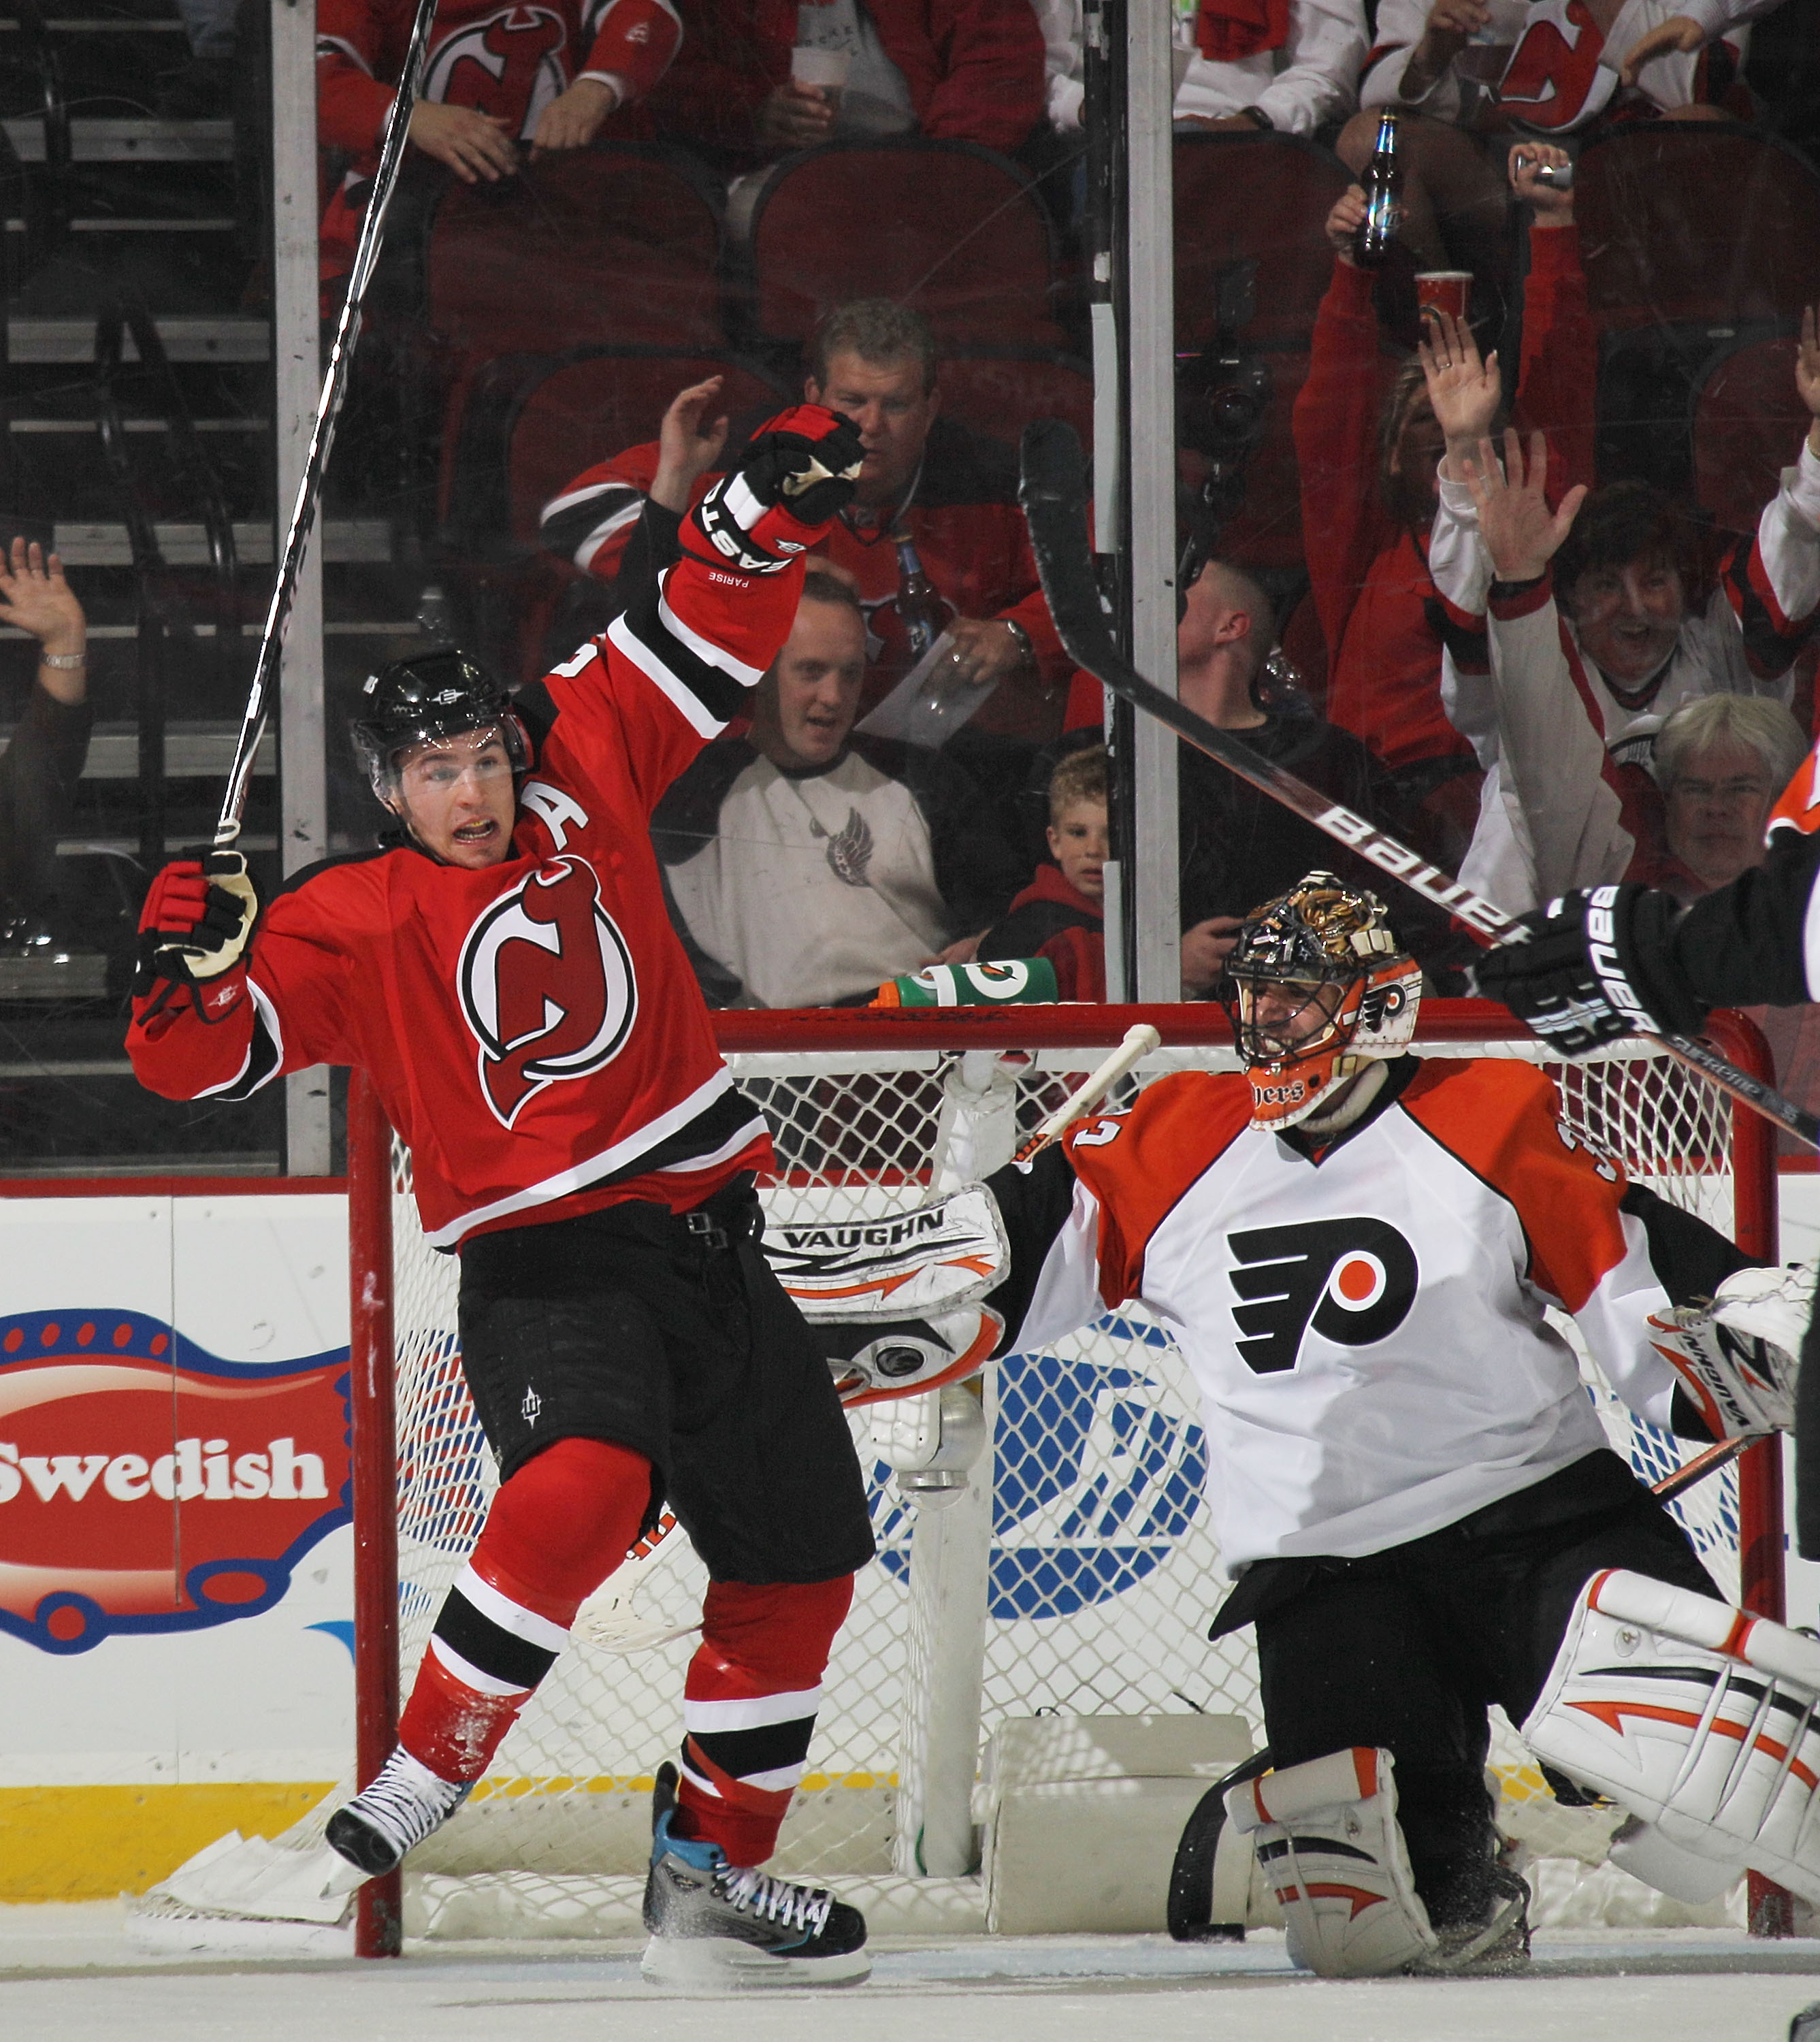 NEWARK, NJ - APRIL 14: Zach Parise #9 of the New Jersey Devils celebrates a goal by Travis Zajac #19 (not shown) against Brian Boucher #33 of the Philadelphia Flyers in Game One of the Eastern Conference Quarterfinals during the 2010 NHL Stanley Cup Playo